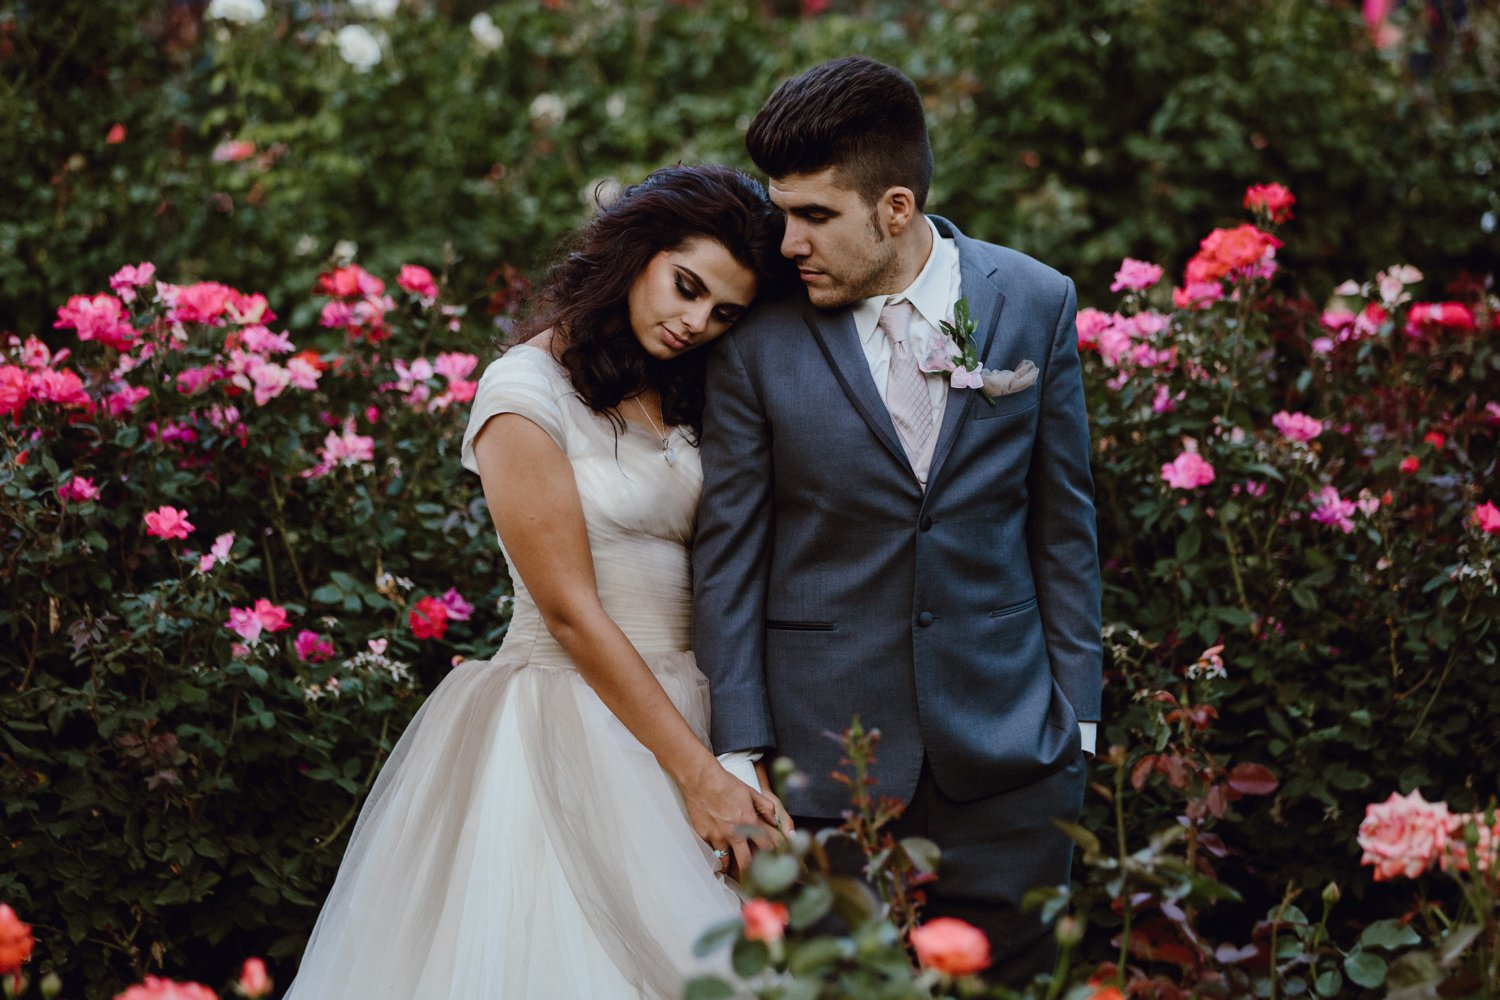 Portland Rose Garden wedding photo of the bride and groom by Catalina Jean